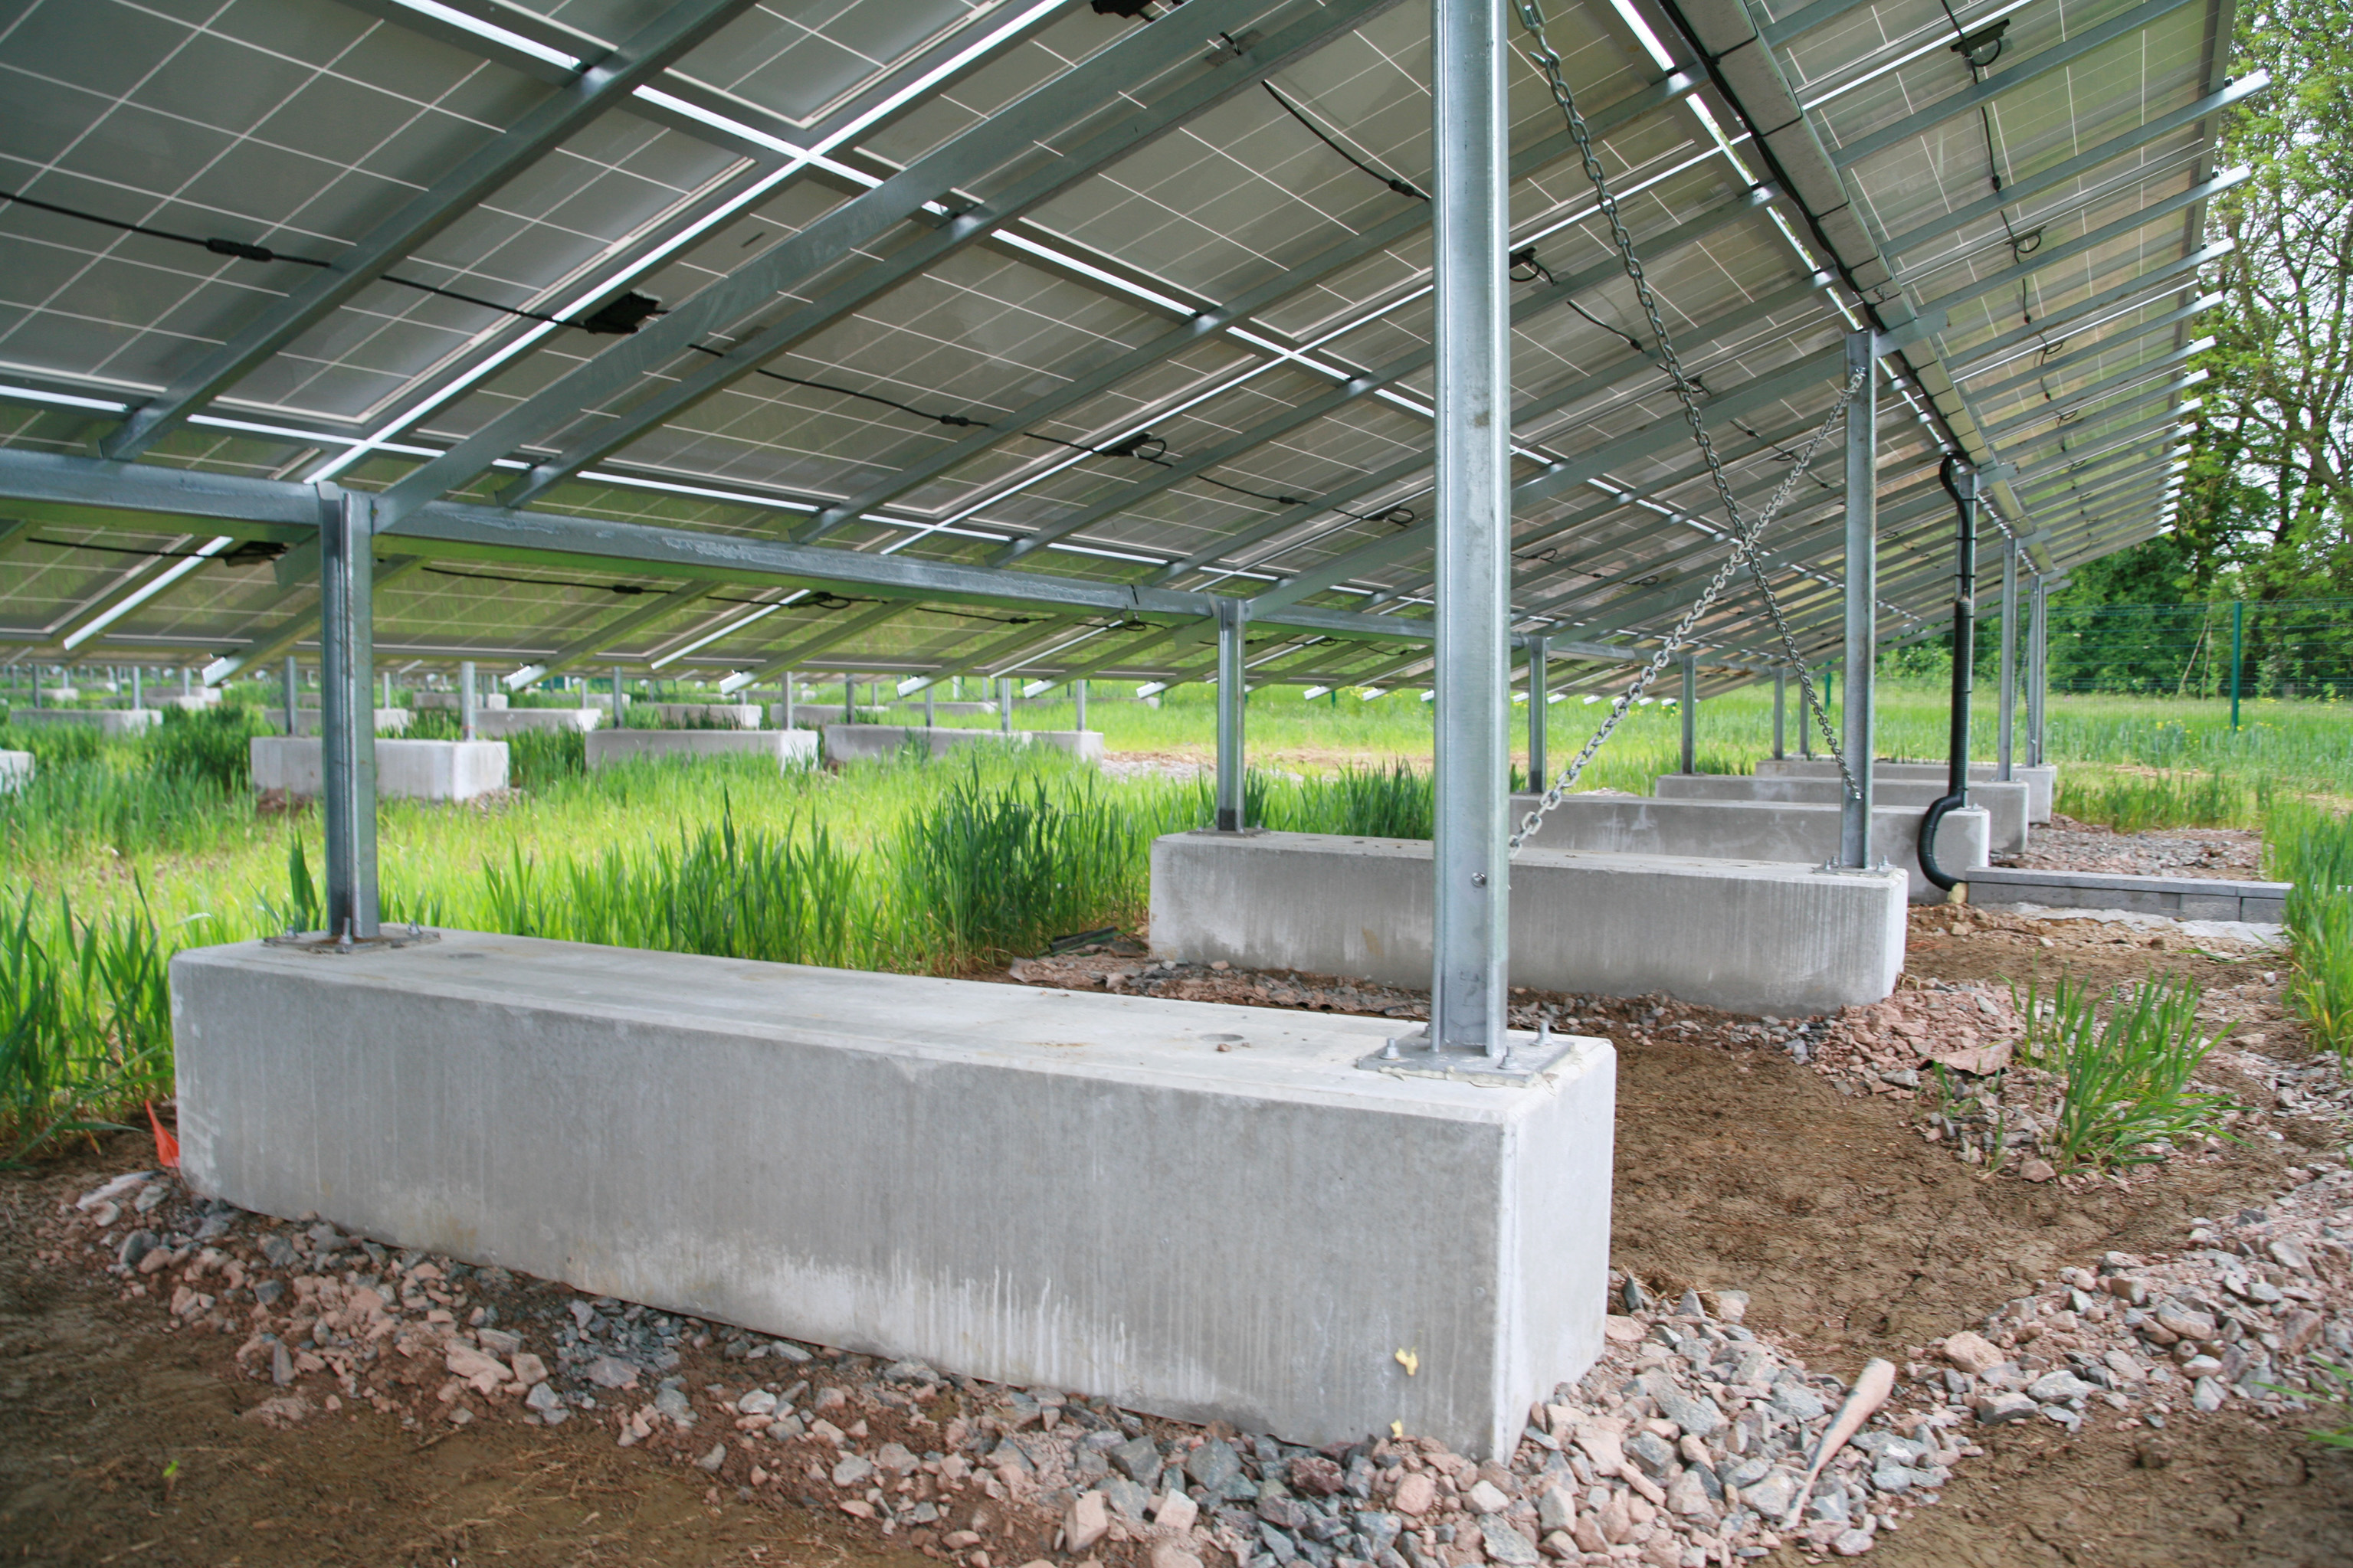 Bespoke Concrete Bases Used To Support Solar Panels